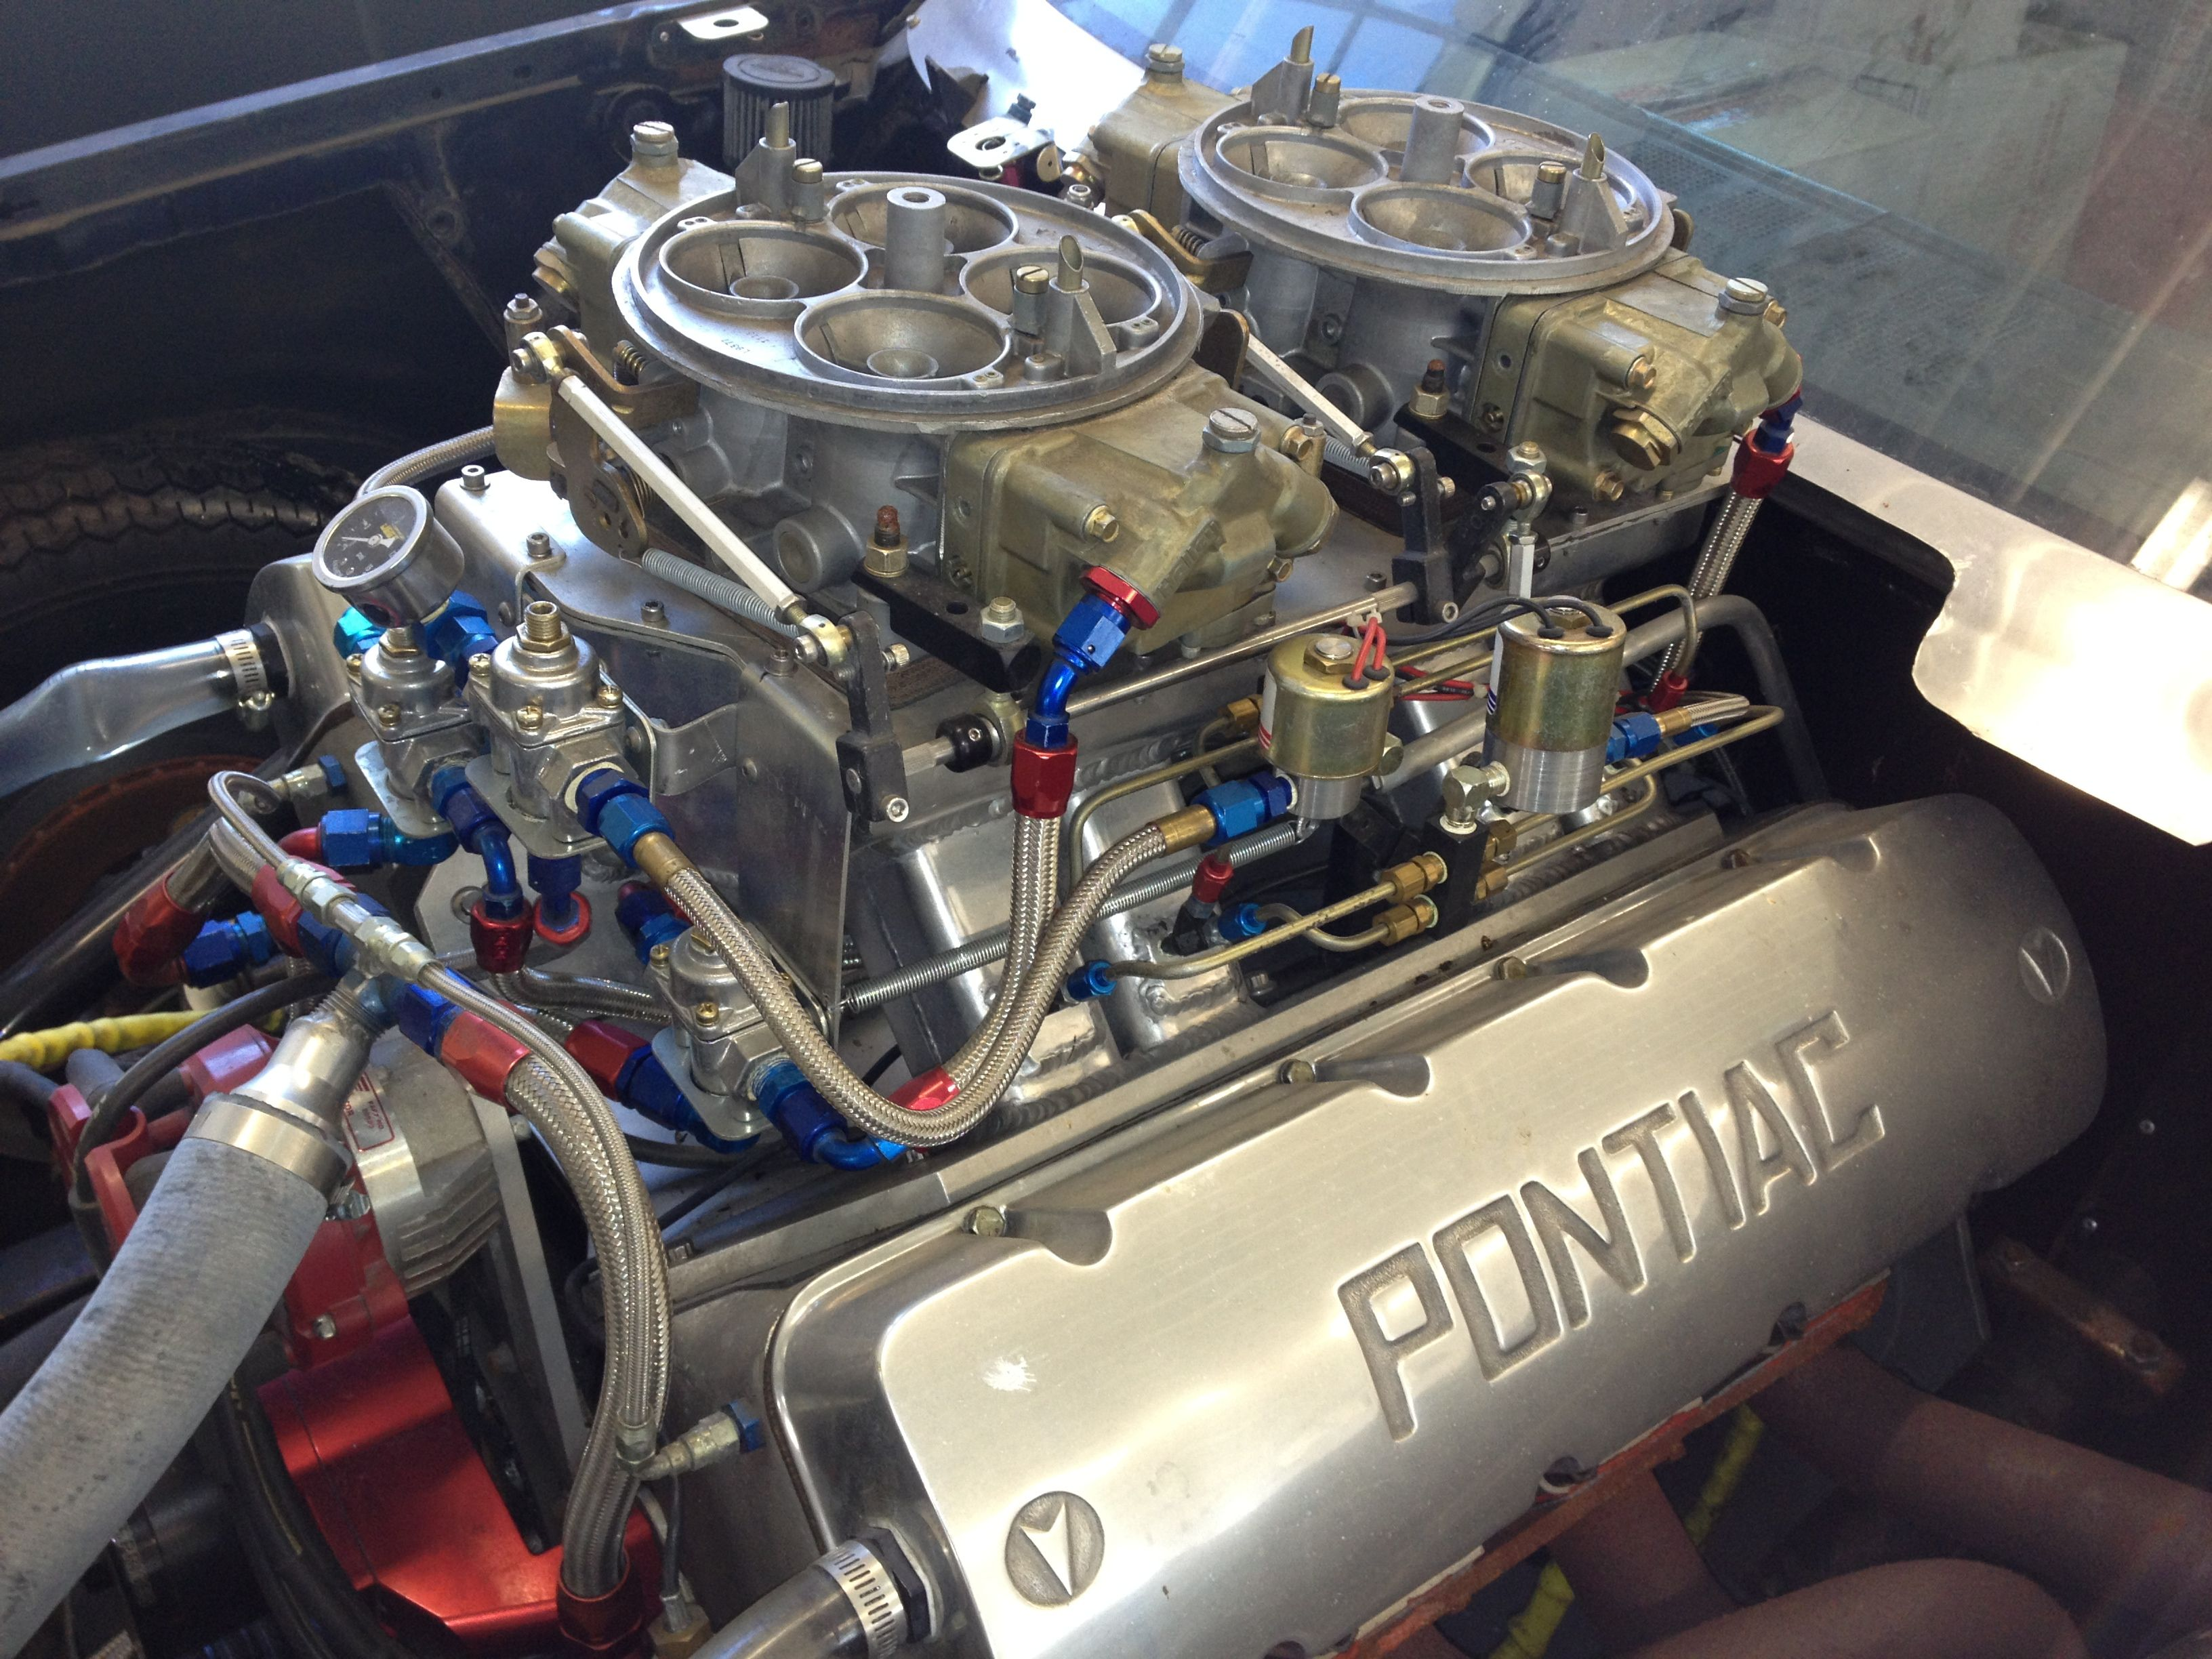 572 Big Block Chevy With Pontiac 427 Pro Stock Heads